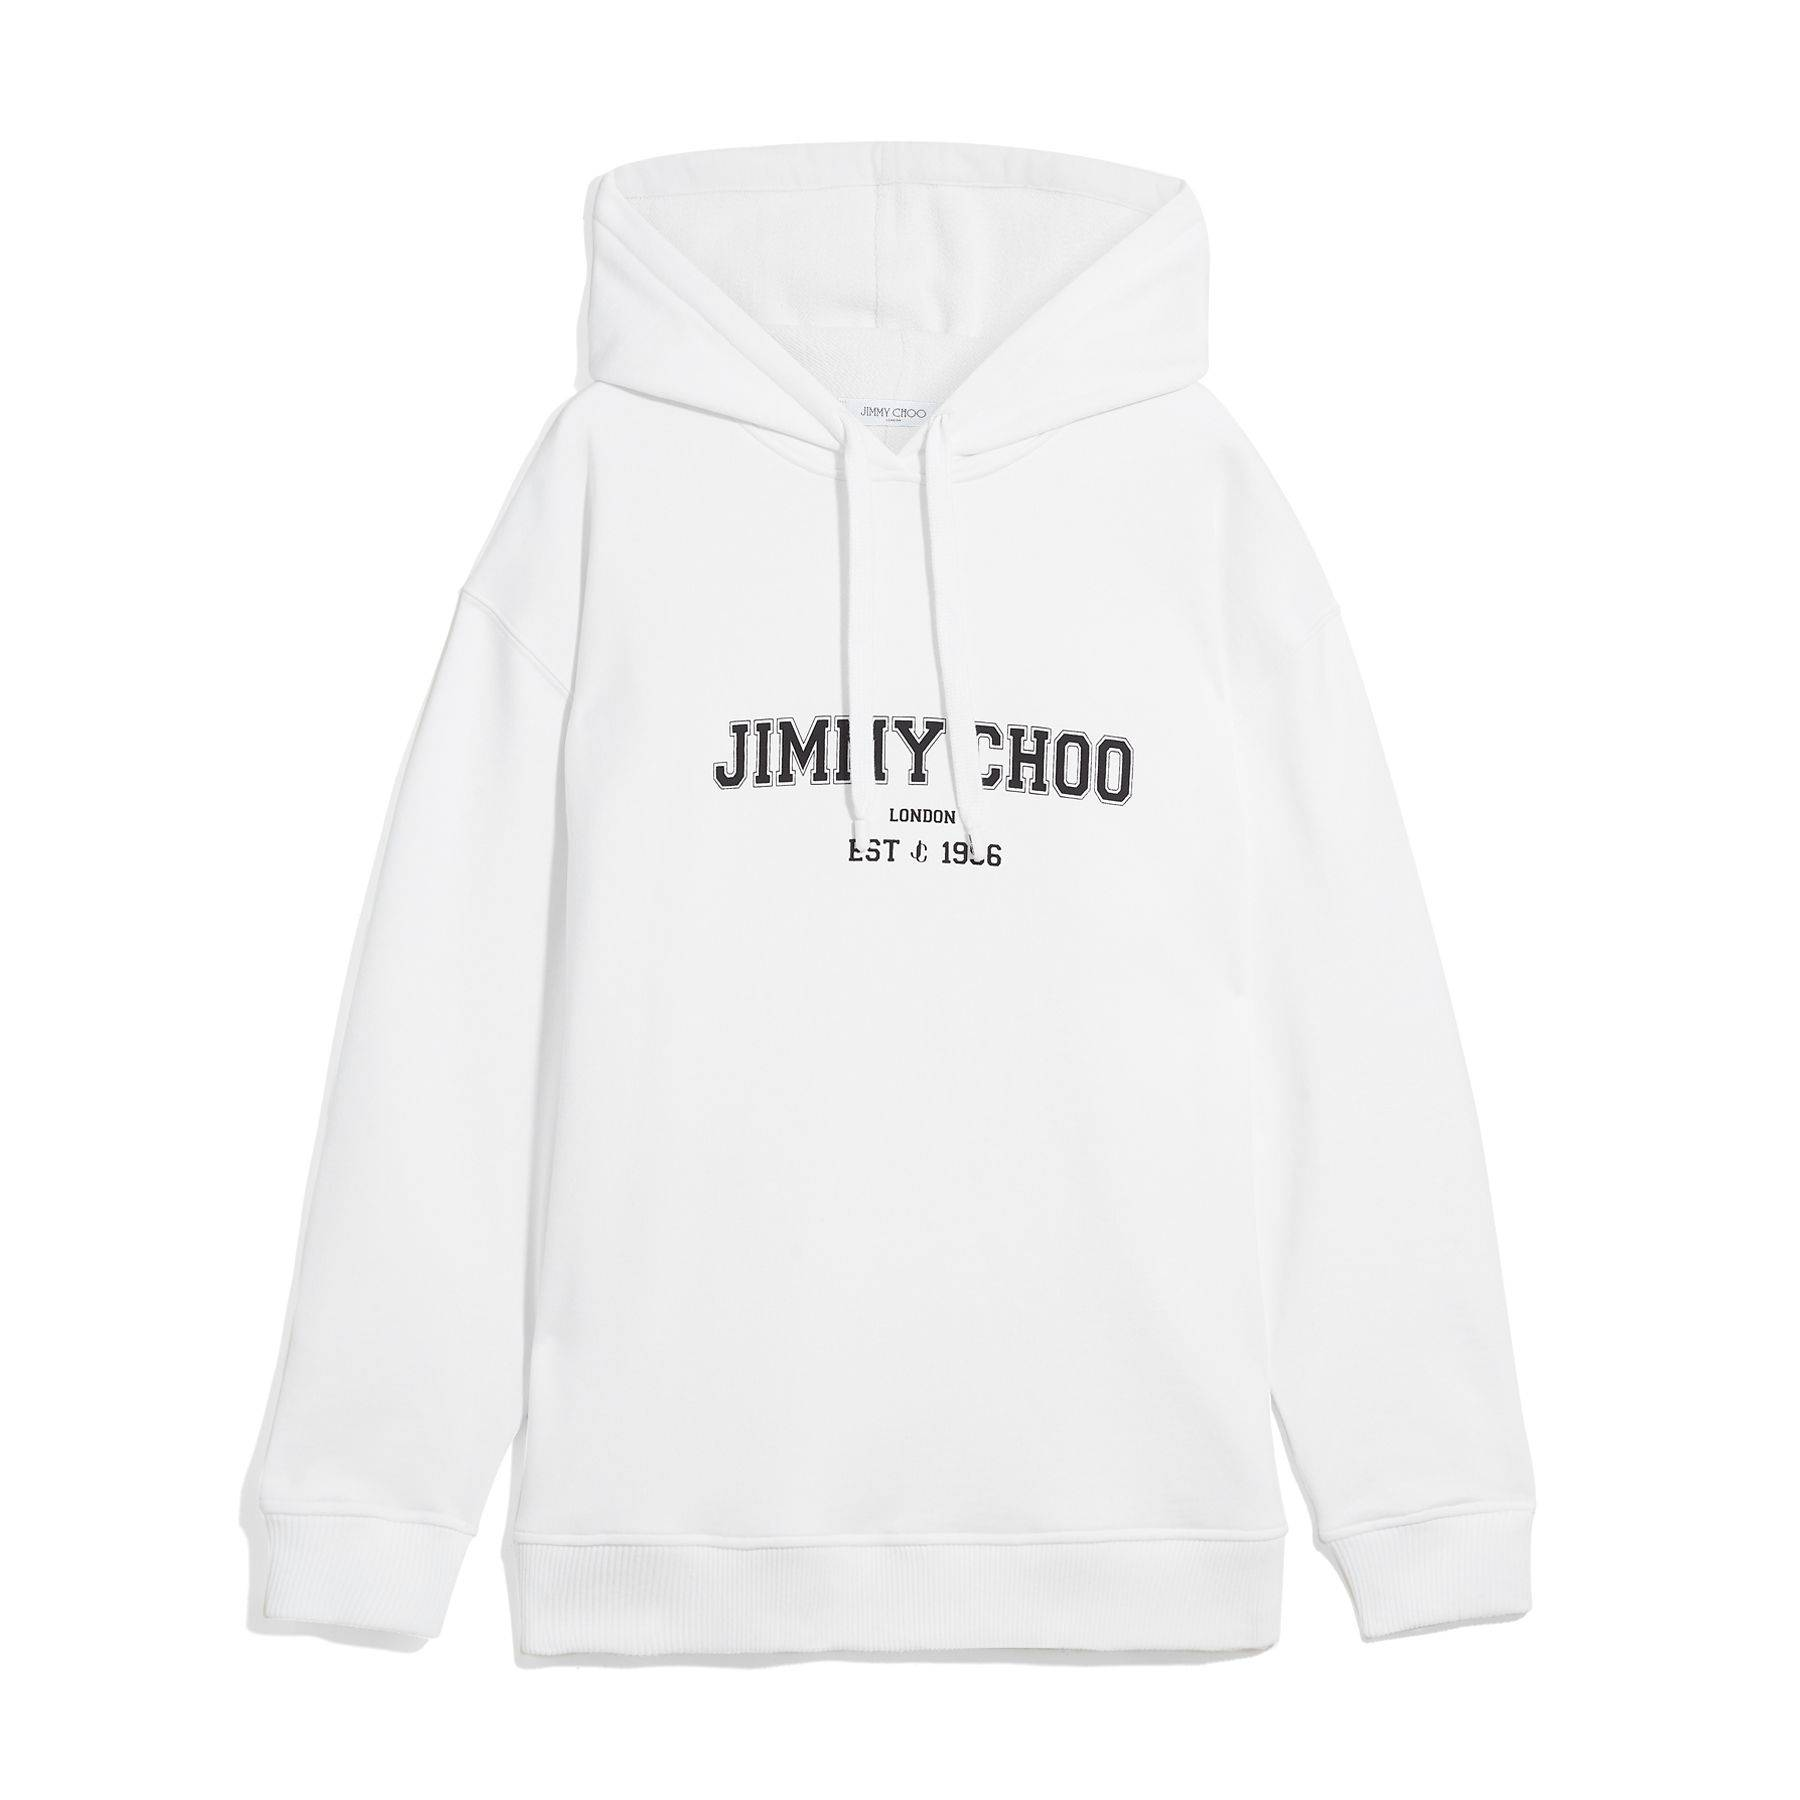 Jimmy Choo Jc College-Hoodie  - S101 White/Black - Size: Small